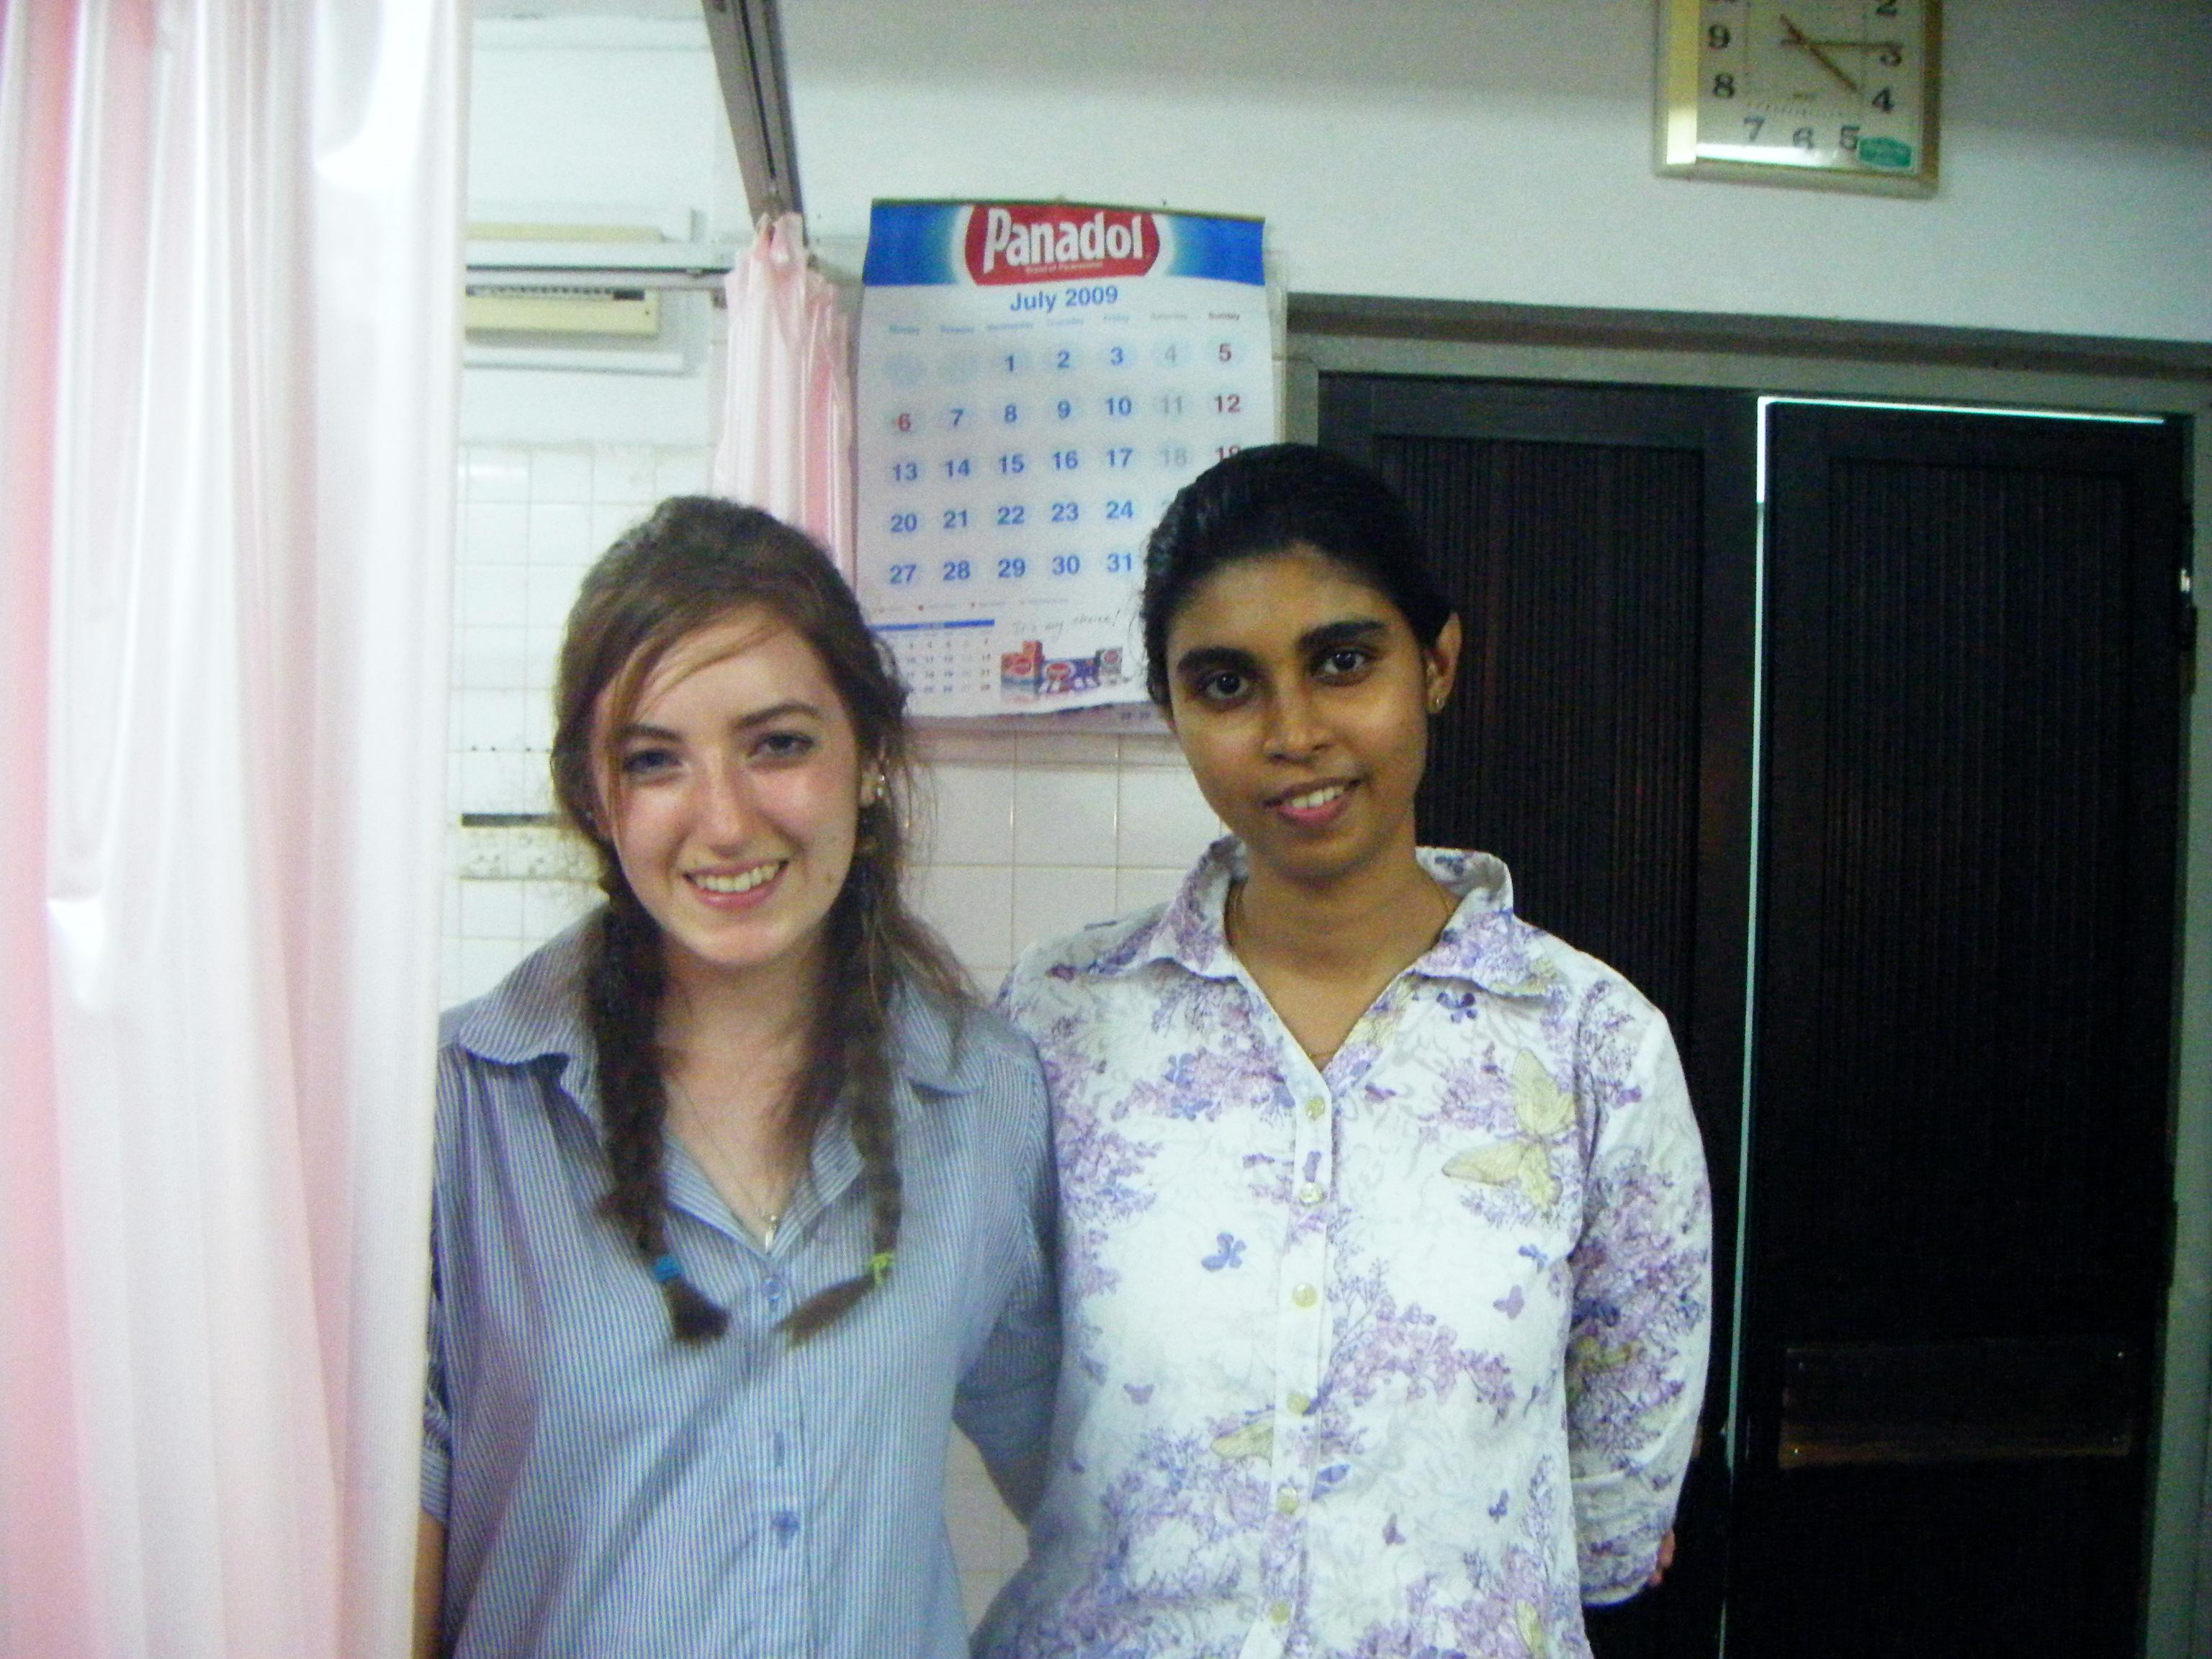 Female Dentistry intern poses with a Healthcare staff member in Hospital during a Dentistry internship placement in Sri Lanka.